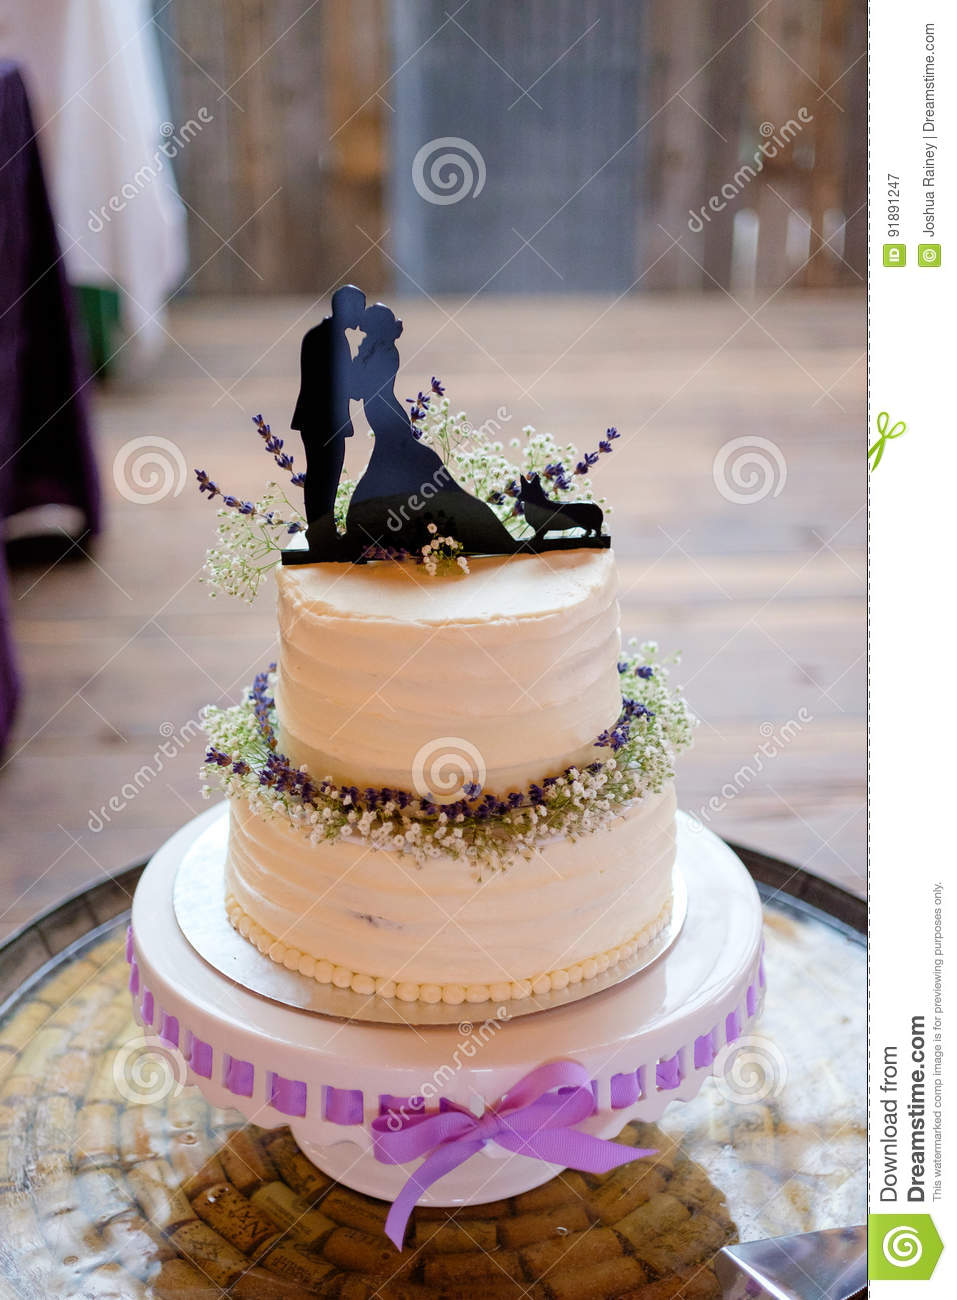 Corgi Wedding Cake Topper stock image. Image of cake ...